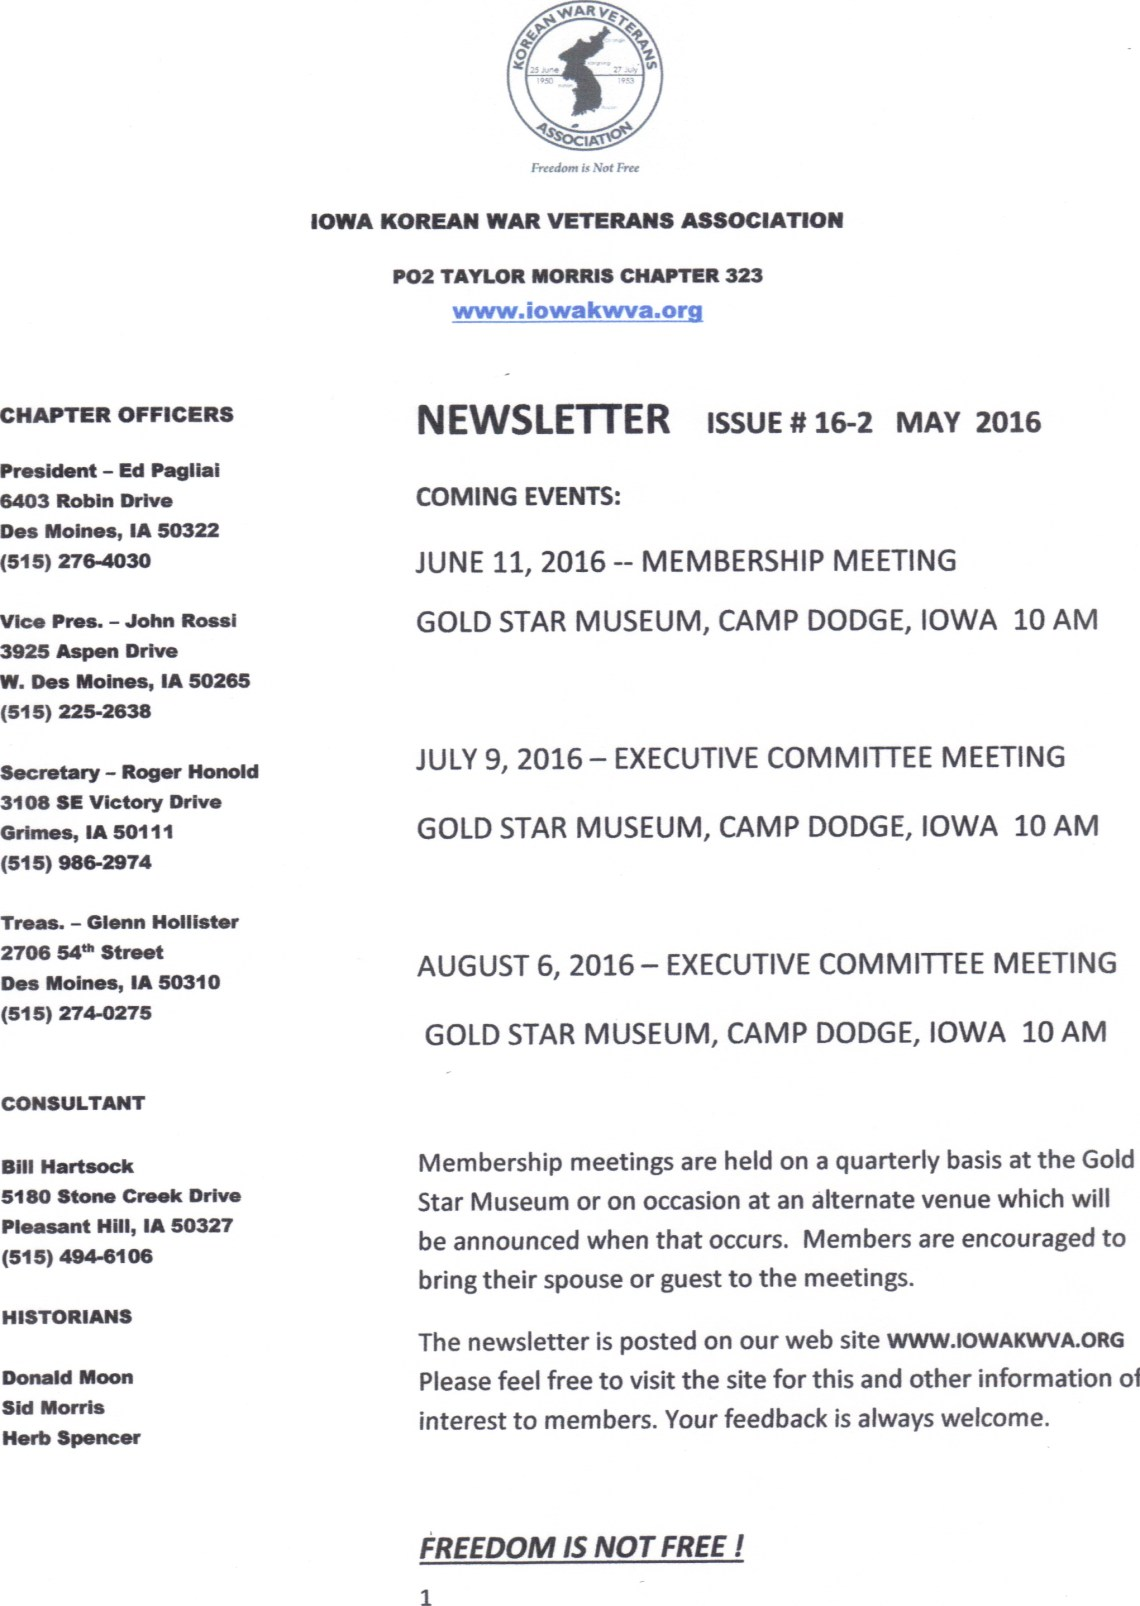 Newsletter16-2pg1